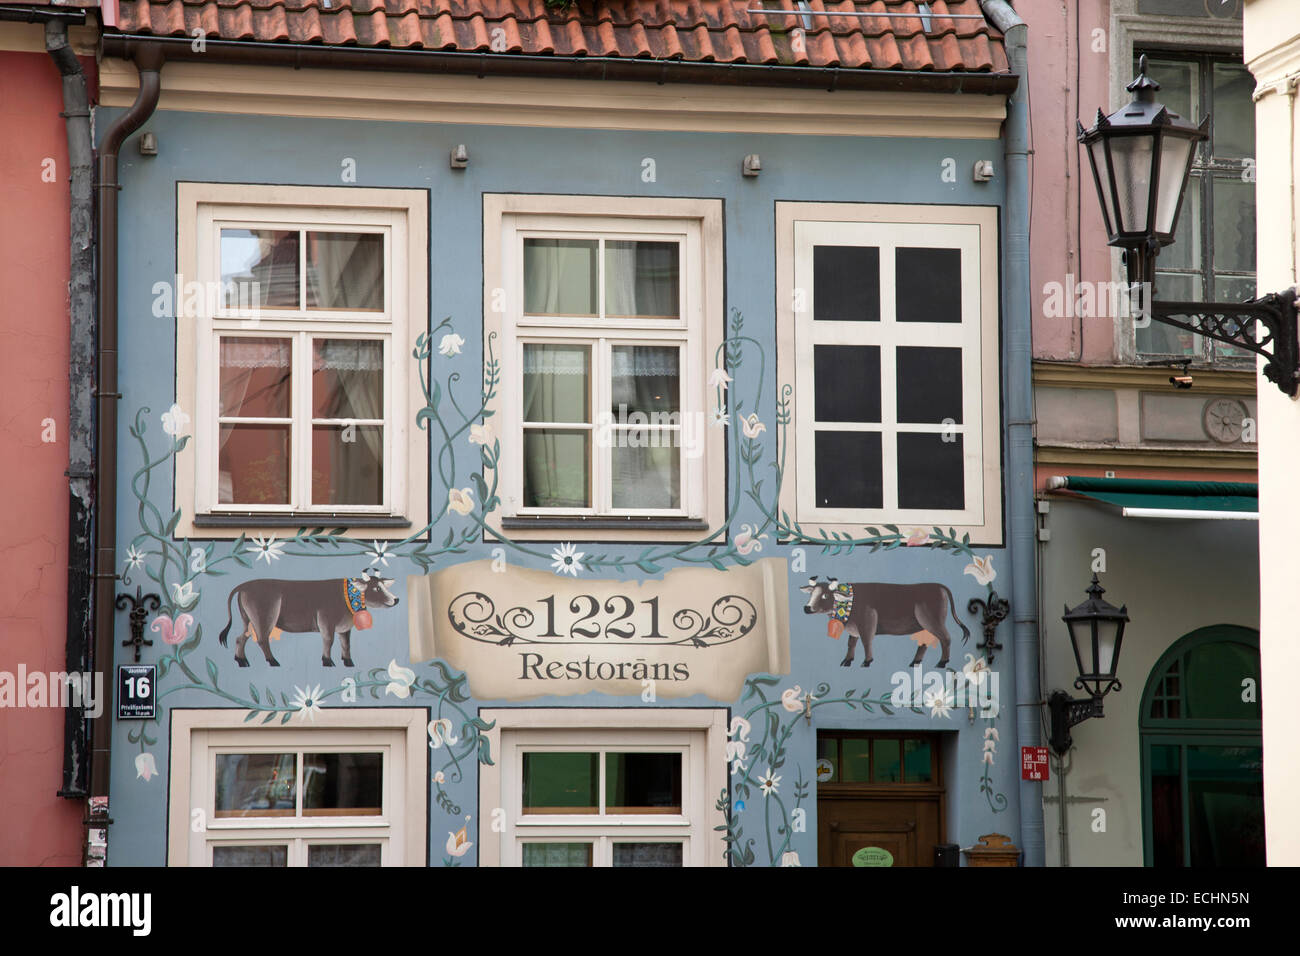 1221 Restaurant, Riga; Latvia - Stock Image